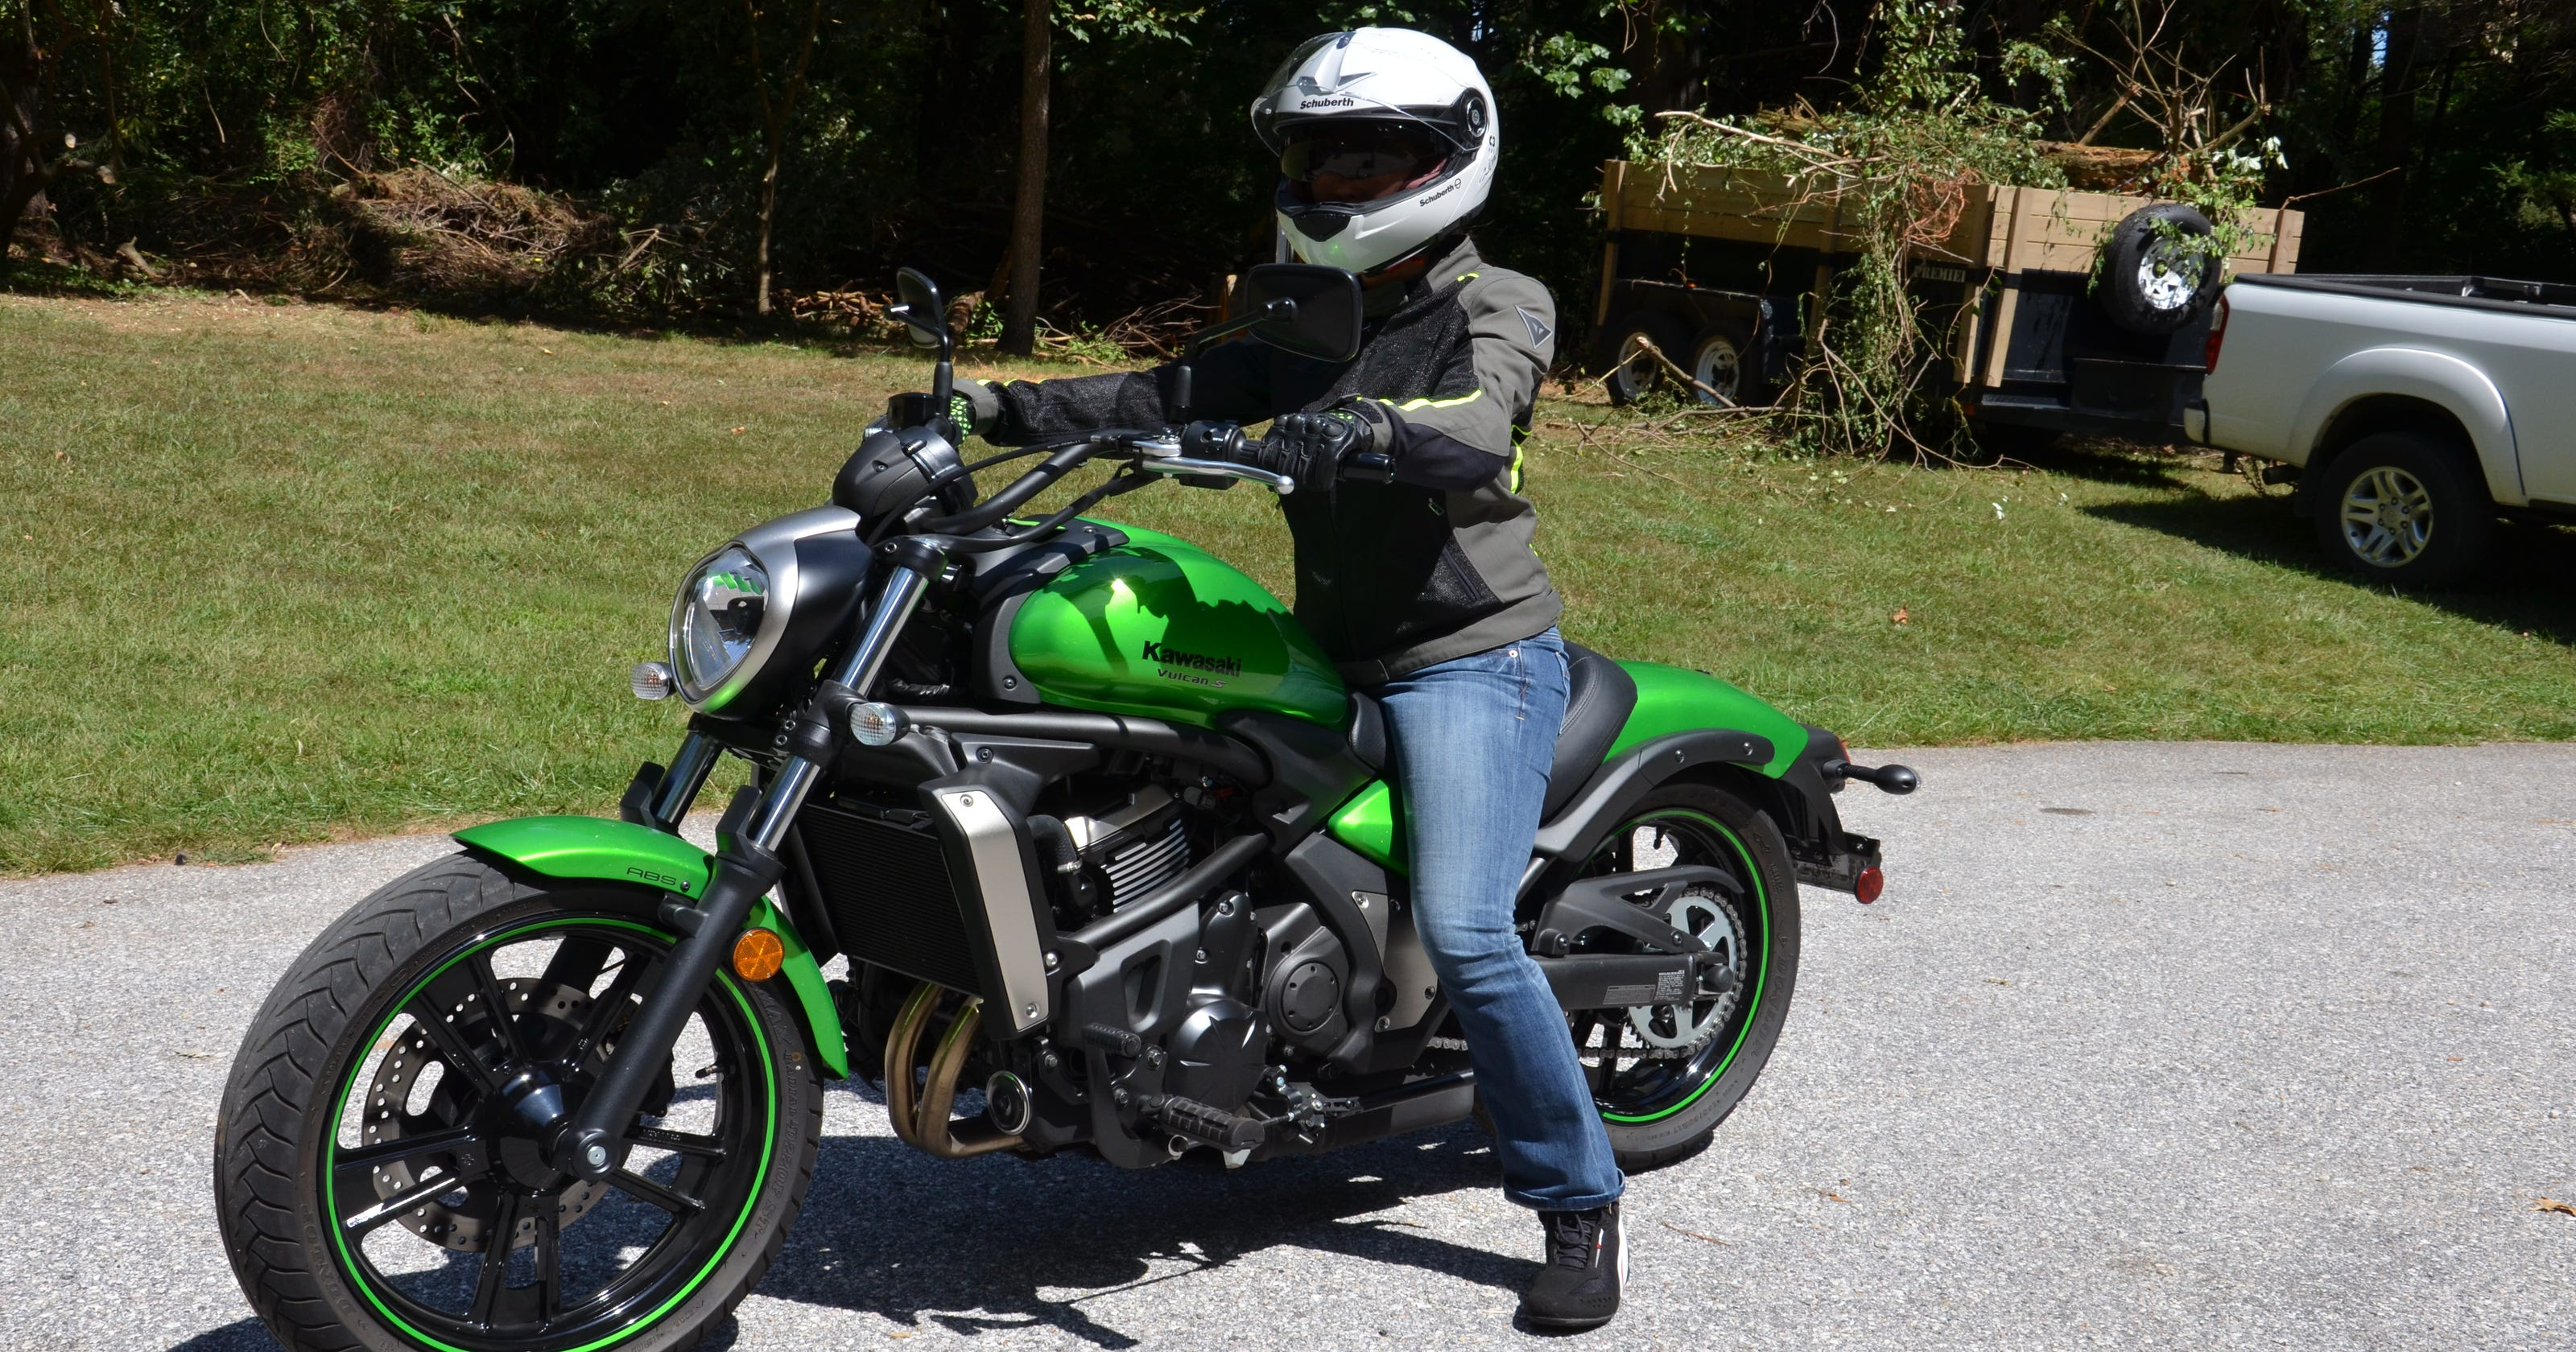 Kawasaki's Vulcan S says one size doesn't fit all